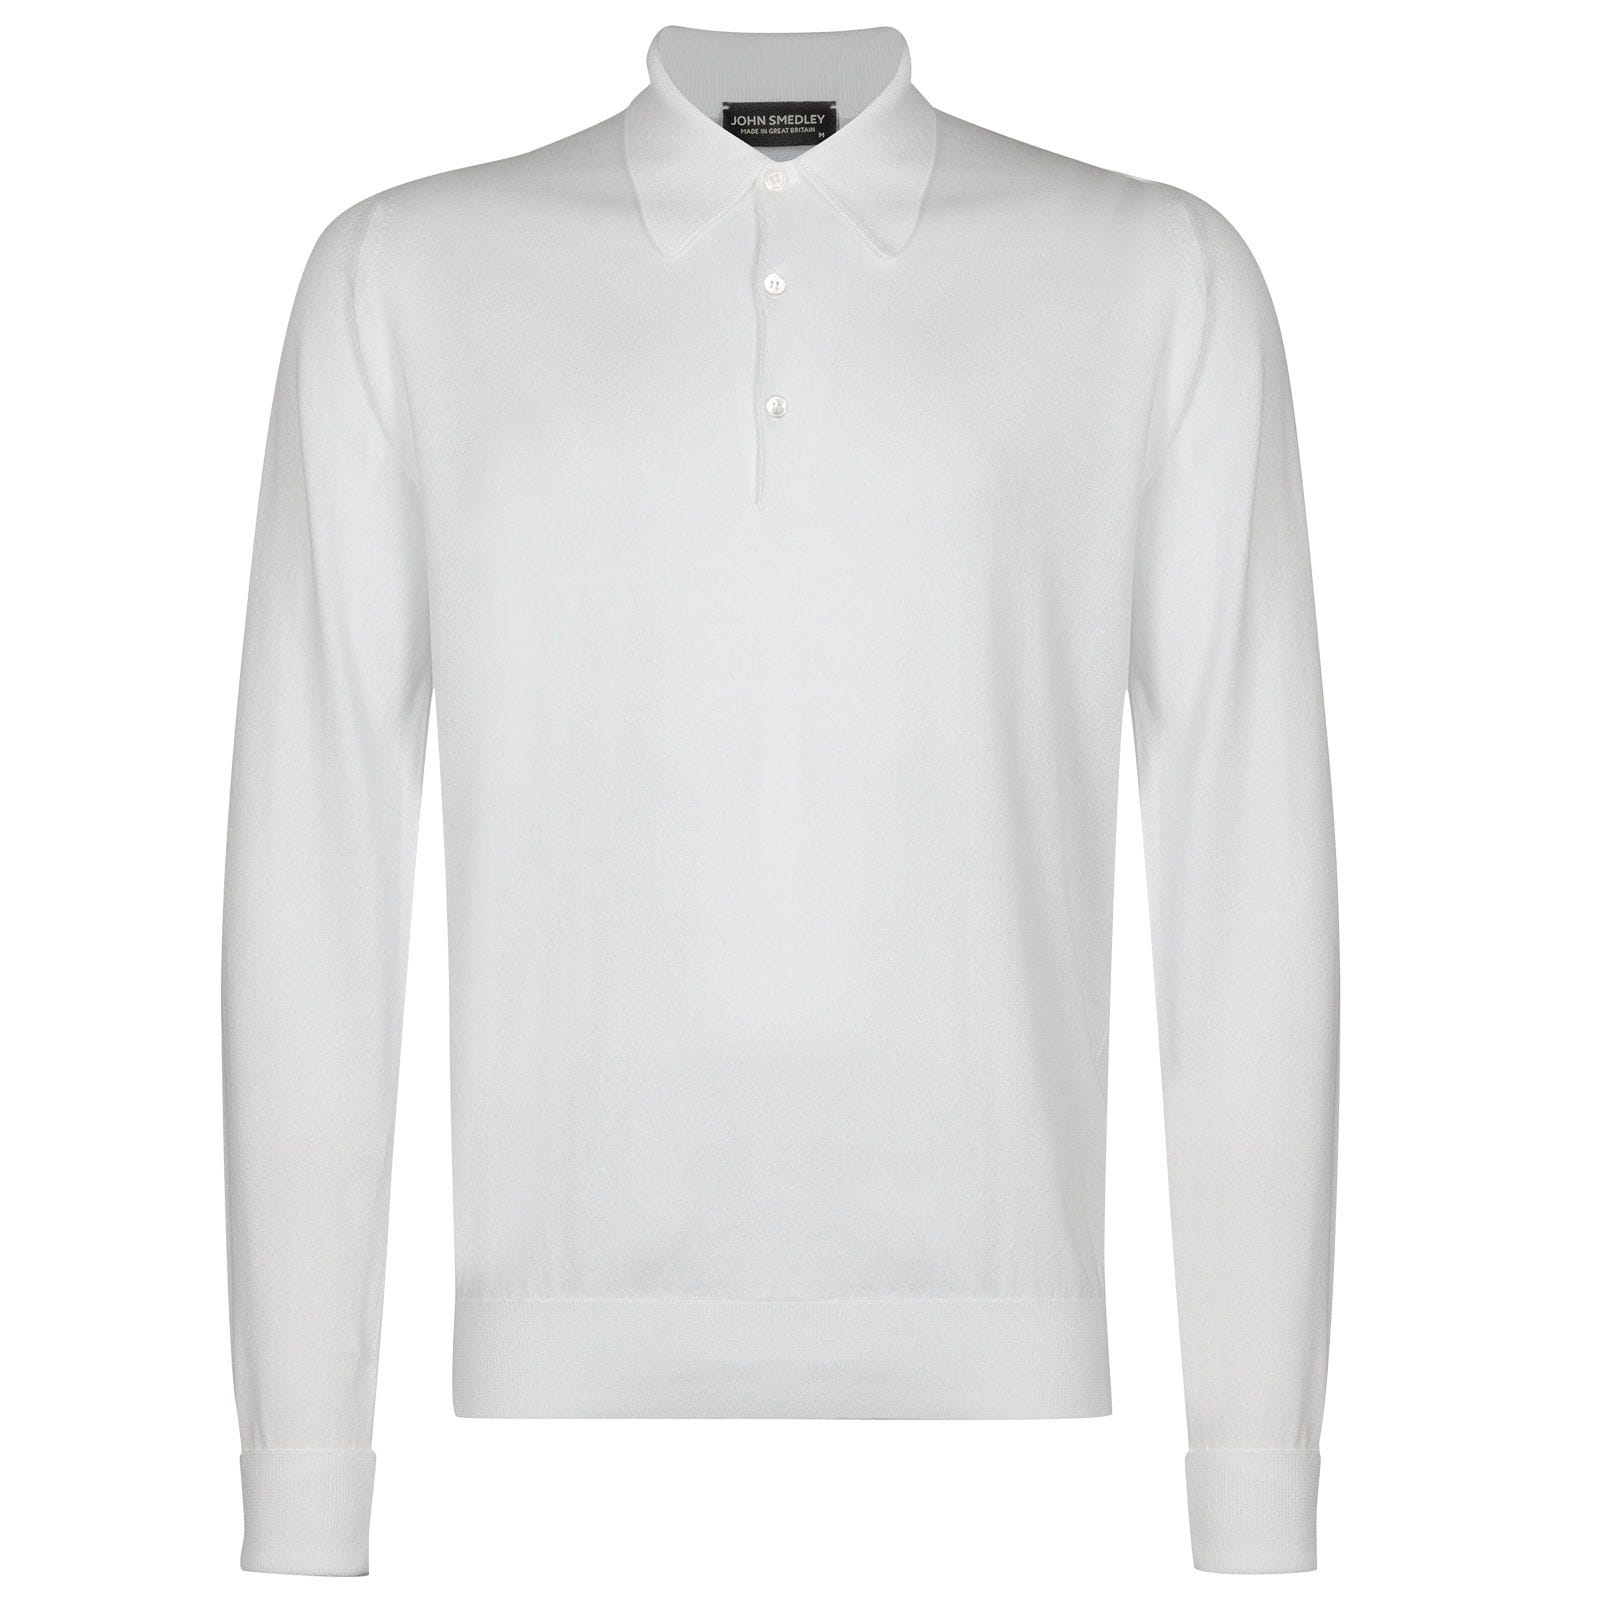 John Smedley finchley Sea Island Cotton Shirt in White-S